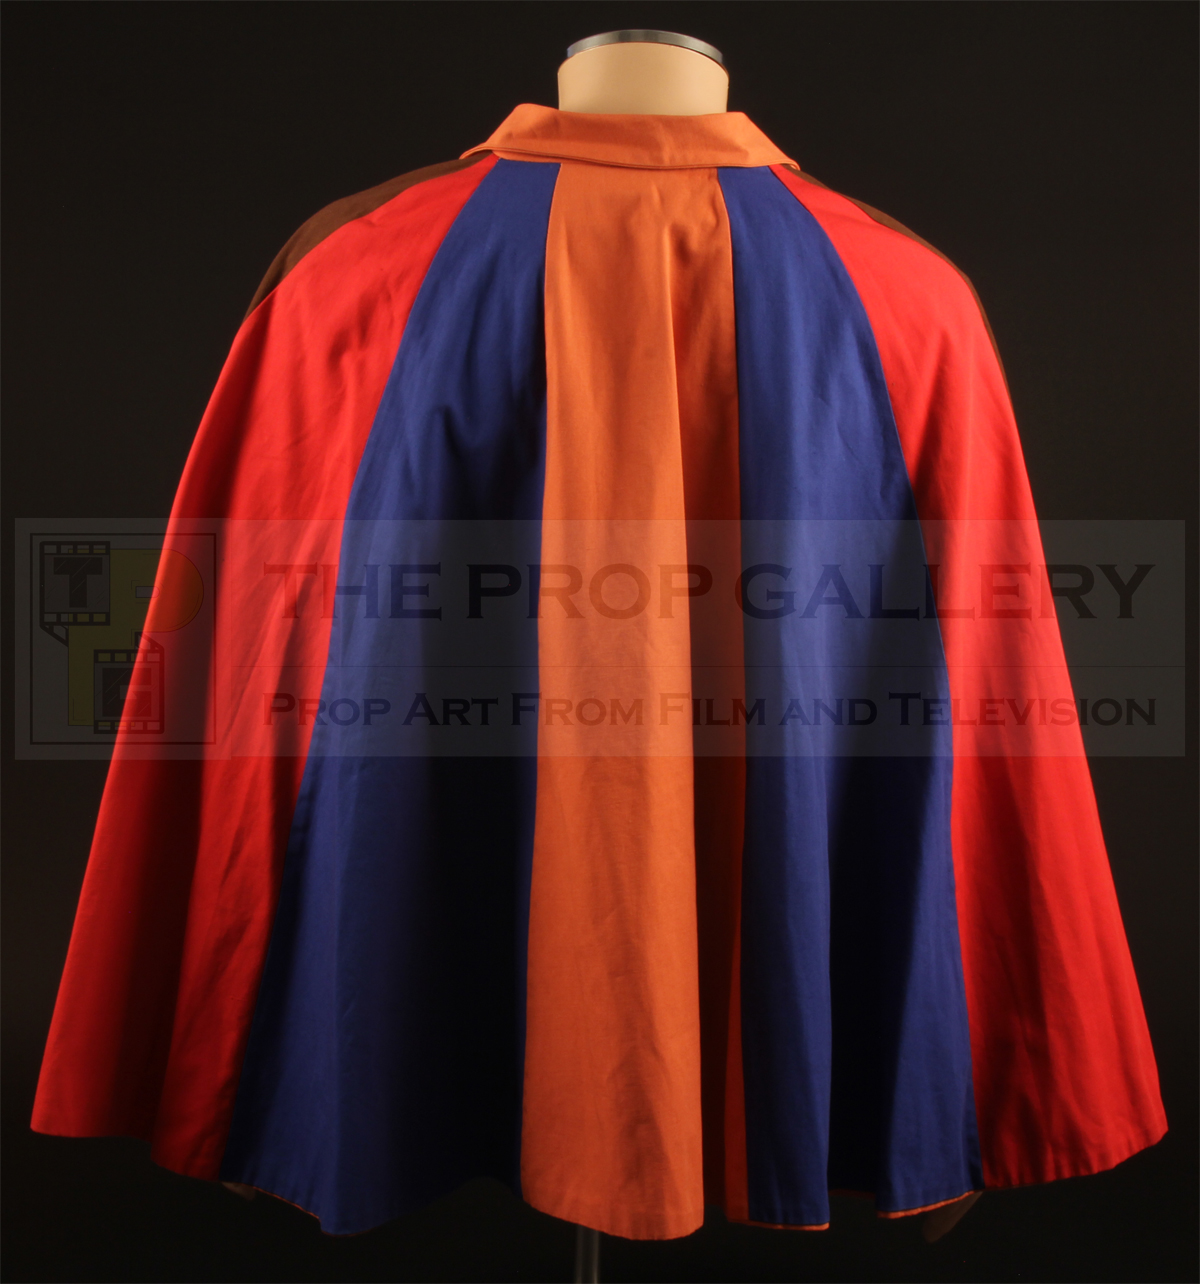 Original Number Fourteen (Sheila Allen) cape used in the production of The Prisoner.